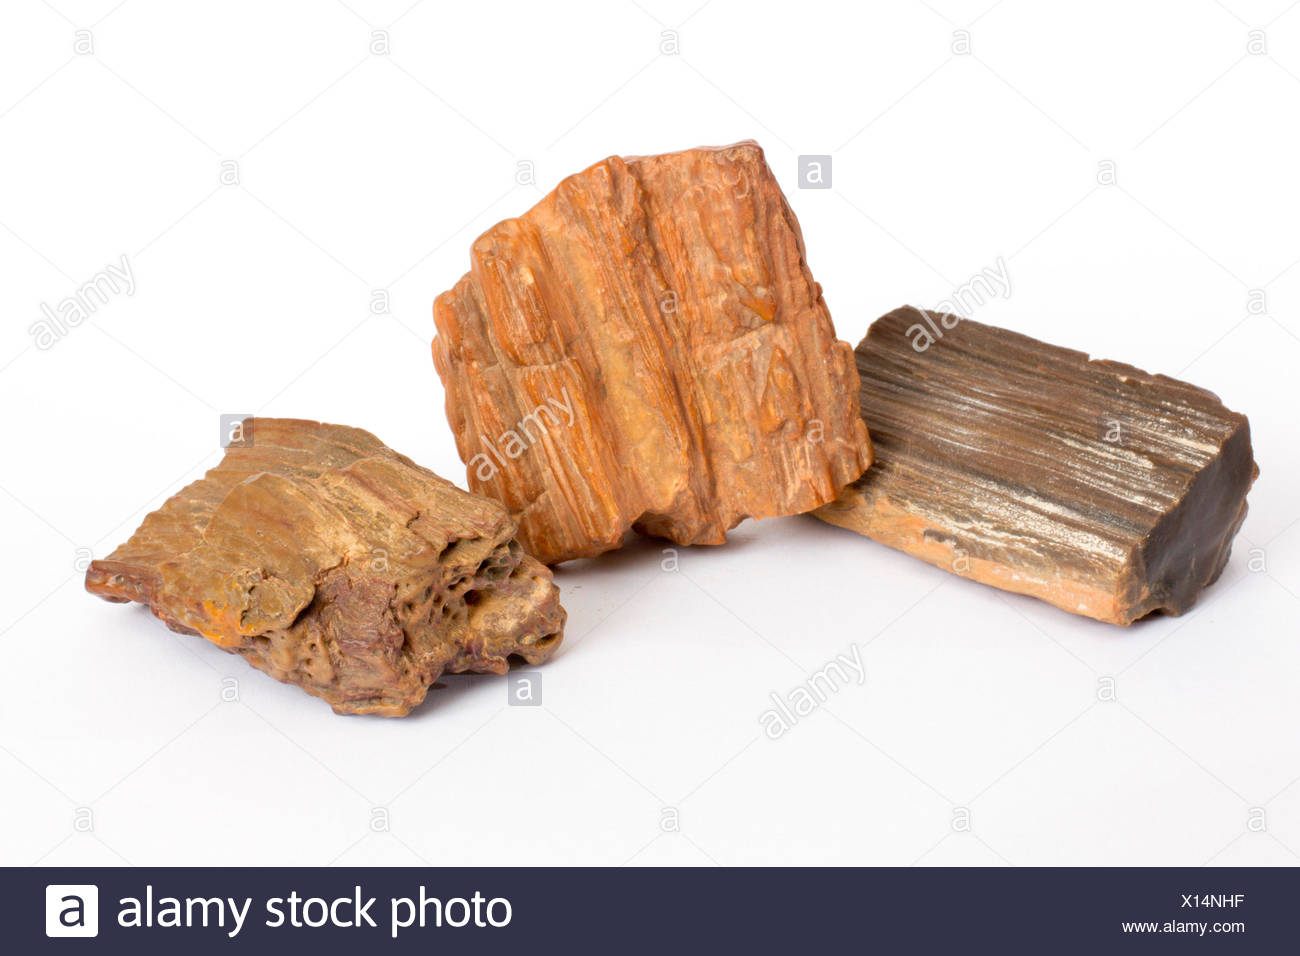 silicified pieces of wood polished by wind, Morocco - Stock Image